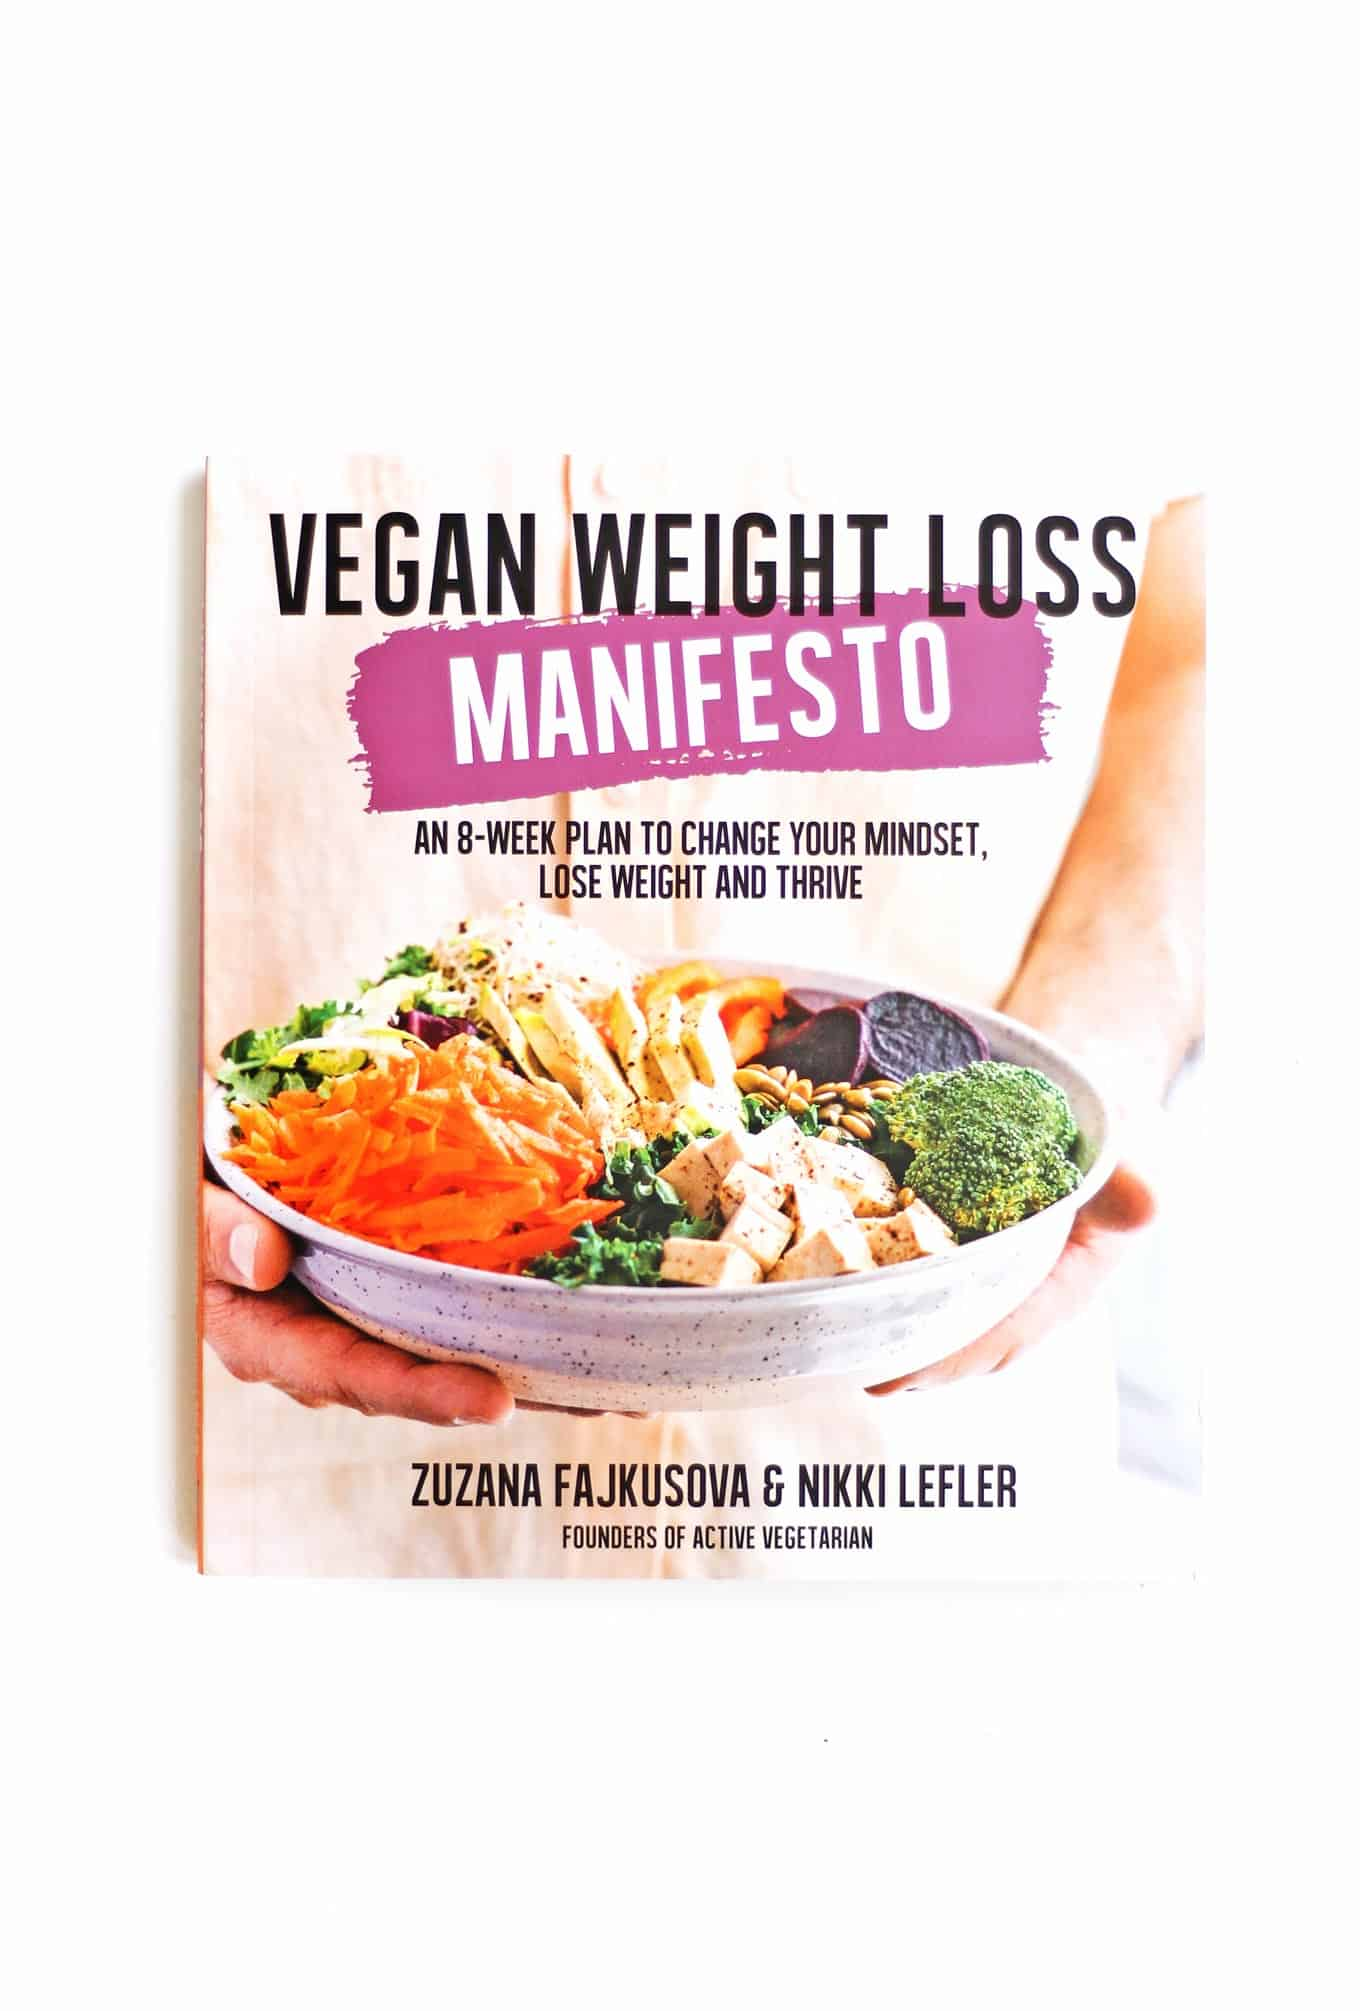 Vegan Weight Loss Manifesto cookbook